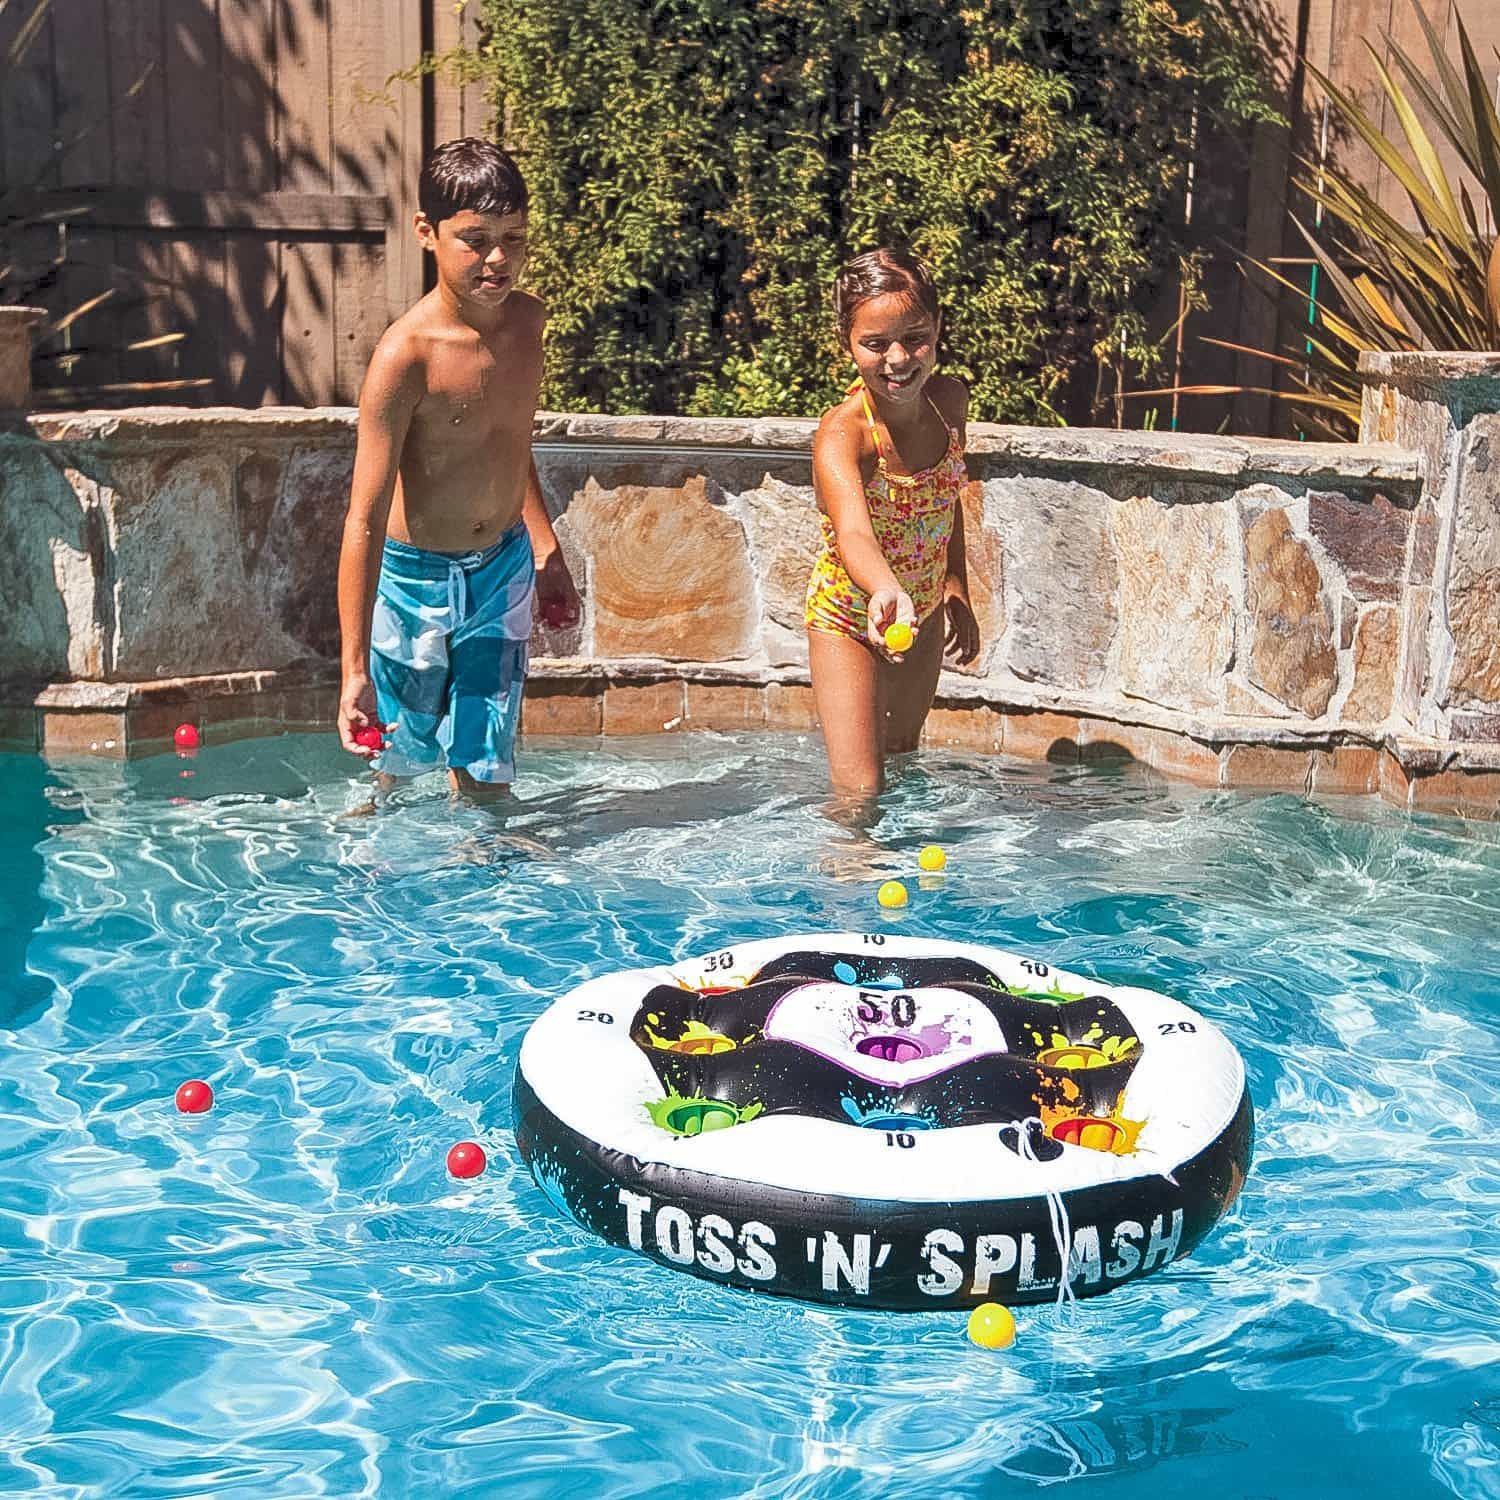 These are the most outrageous and fun pool toys. Everyone in the family will have a blast with these!